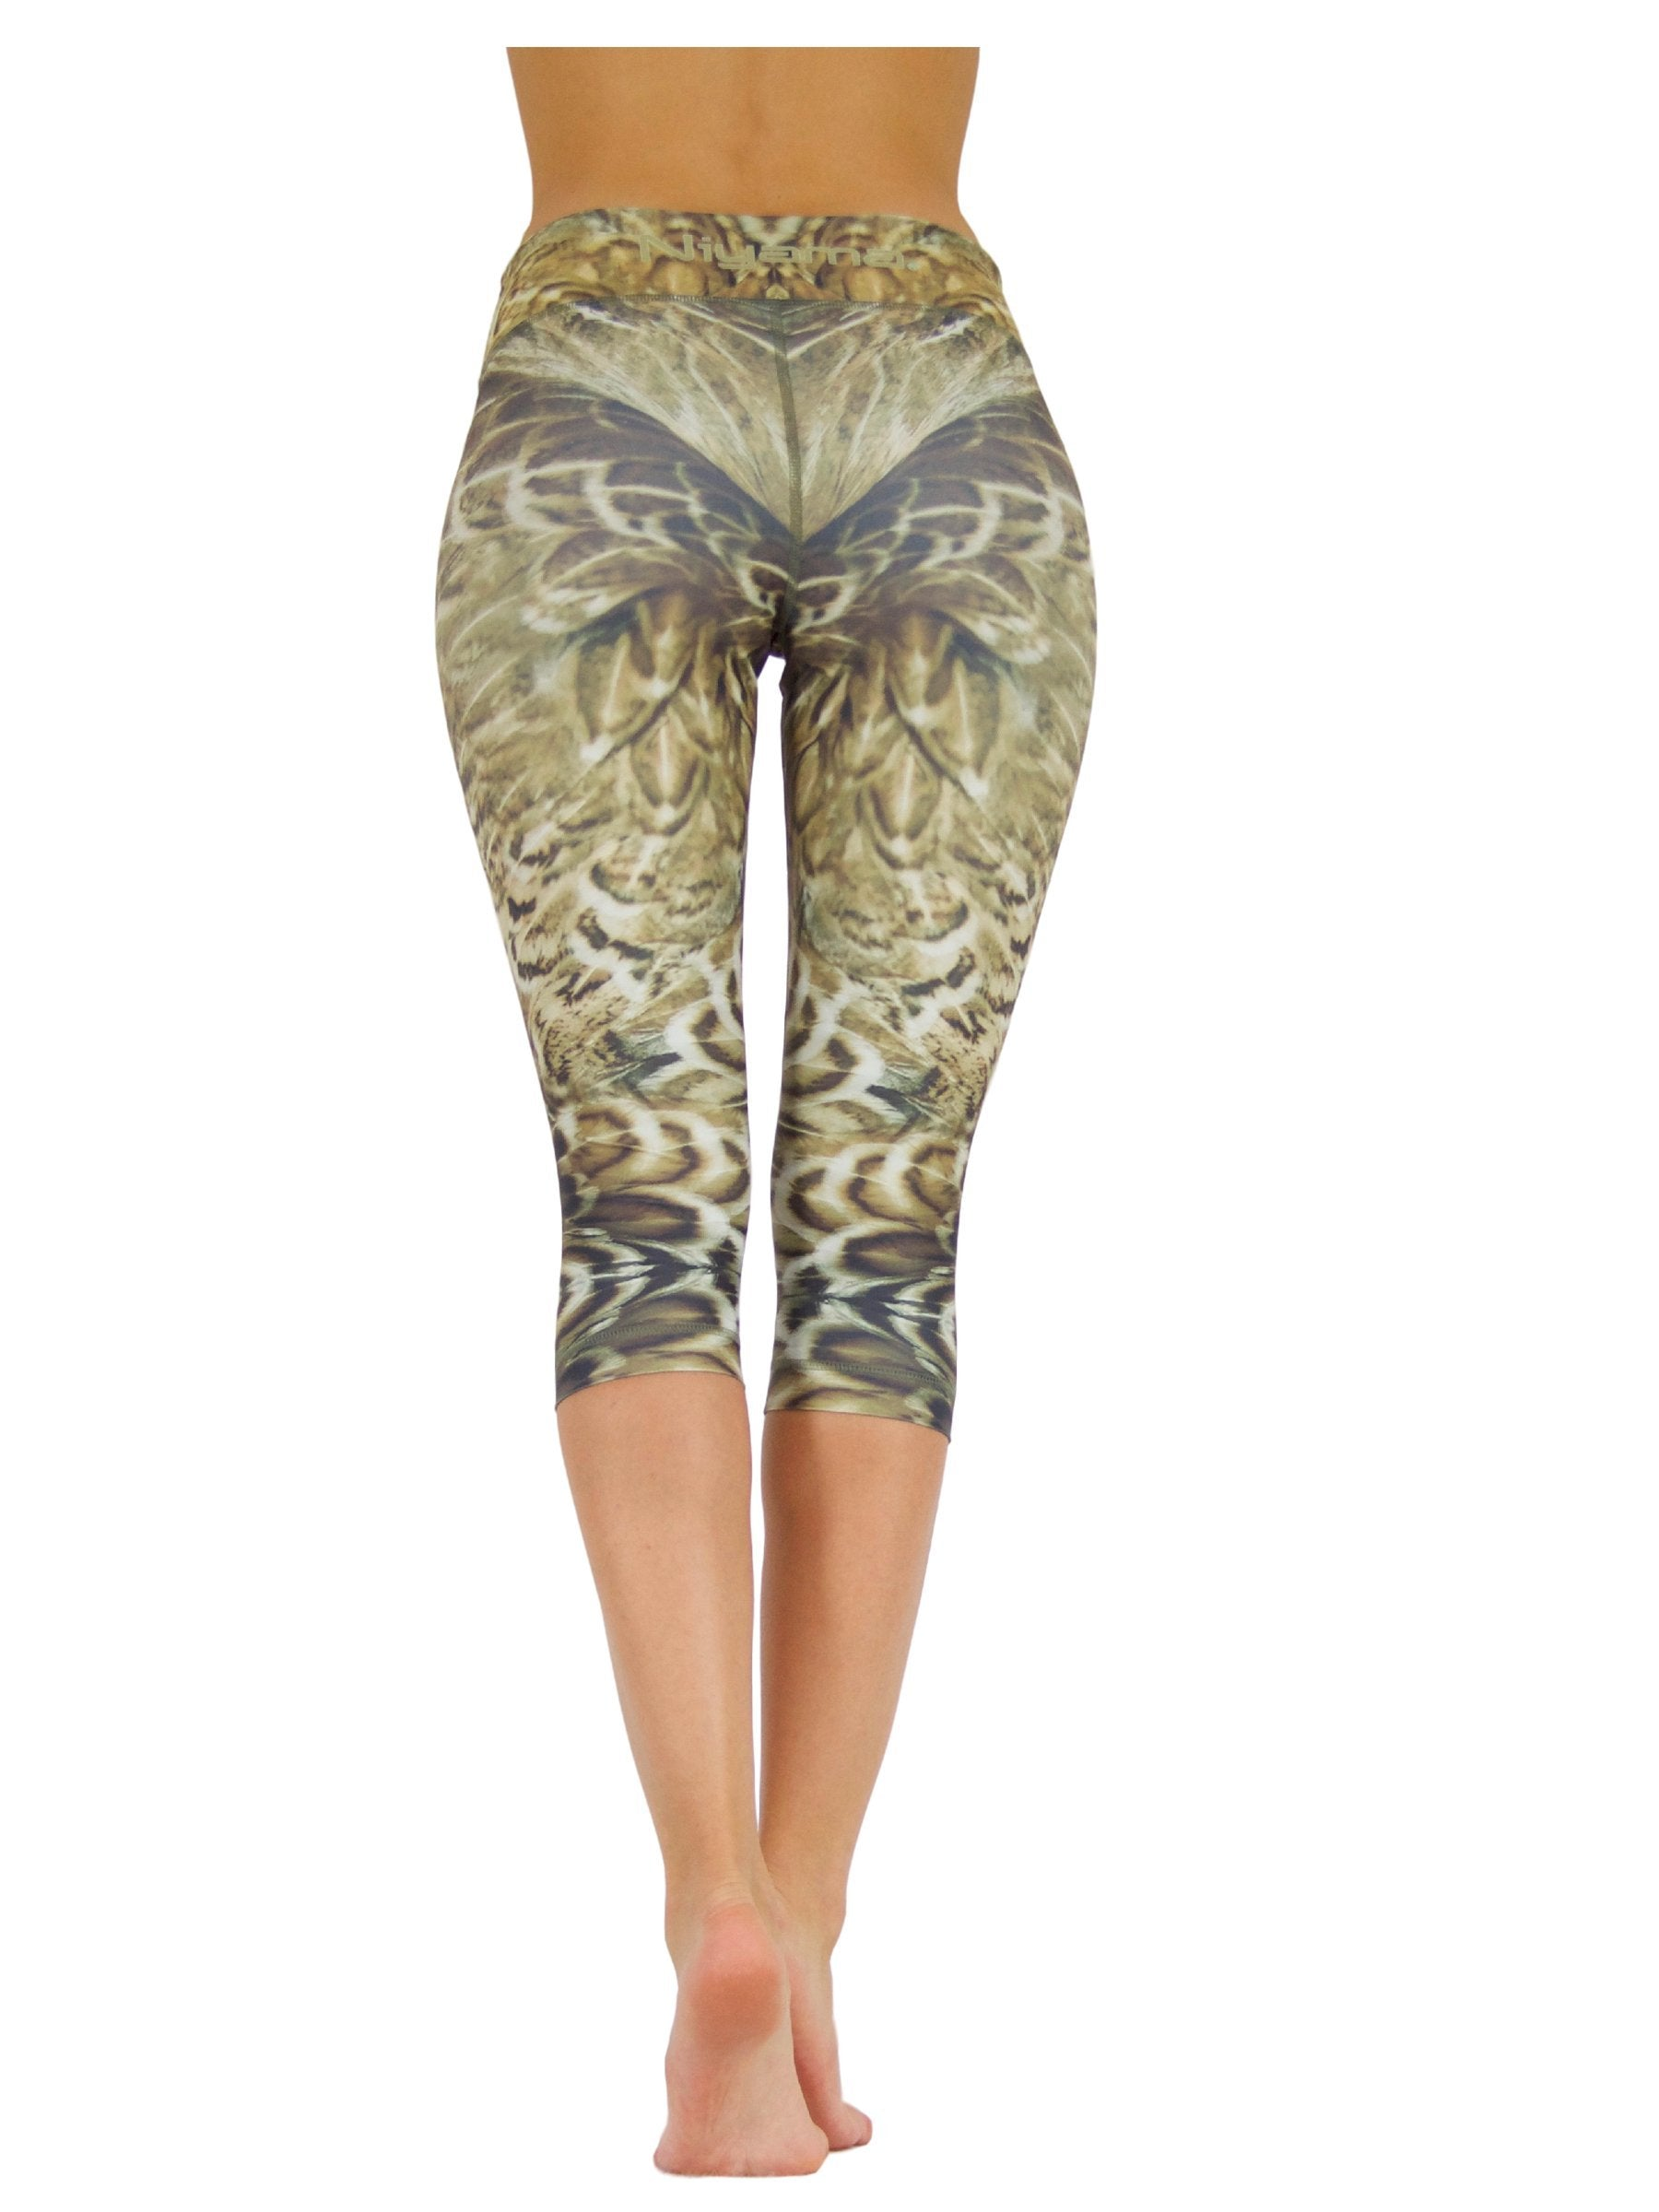 Free Eagle by Niyama - High Quality, , Yoga Legging for Movement Artists.